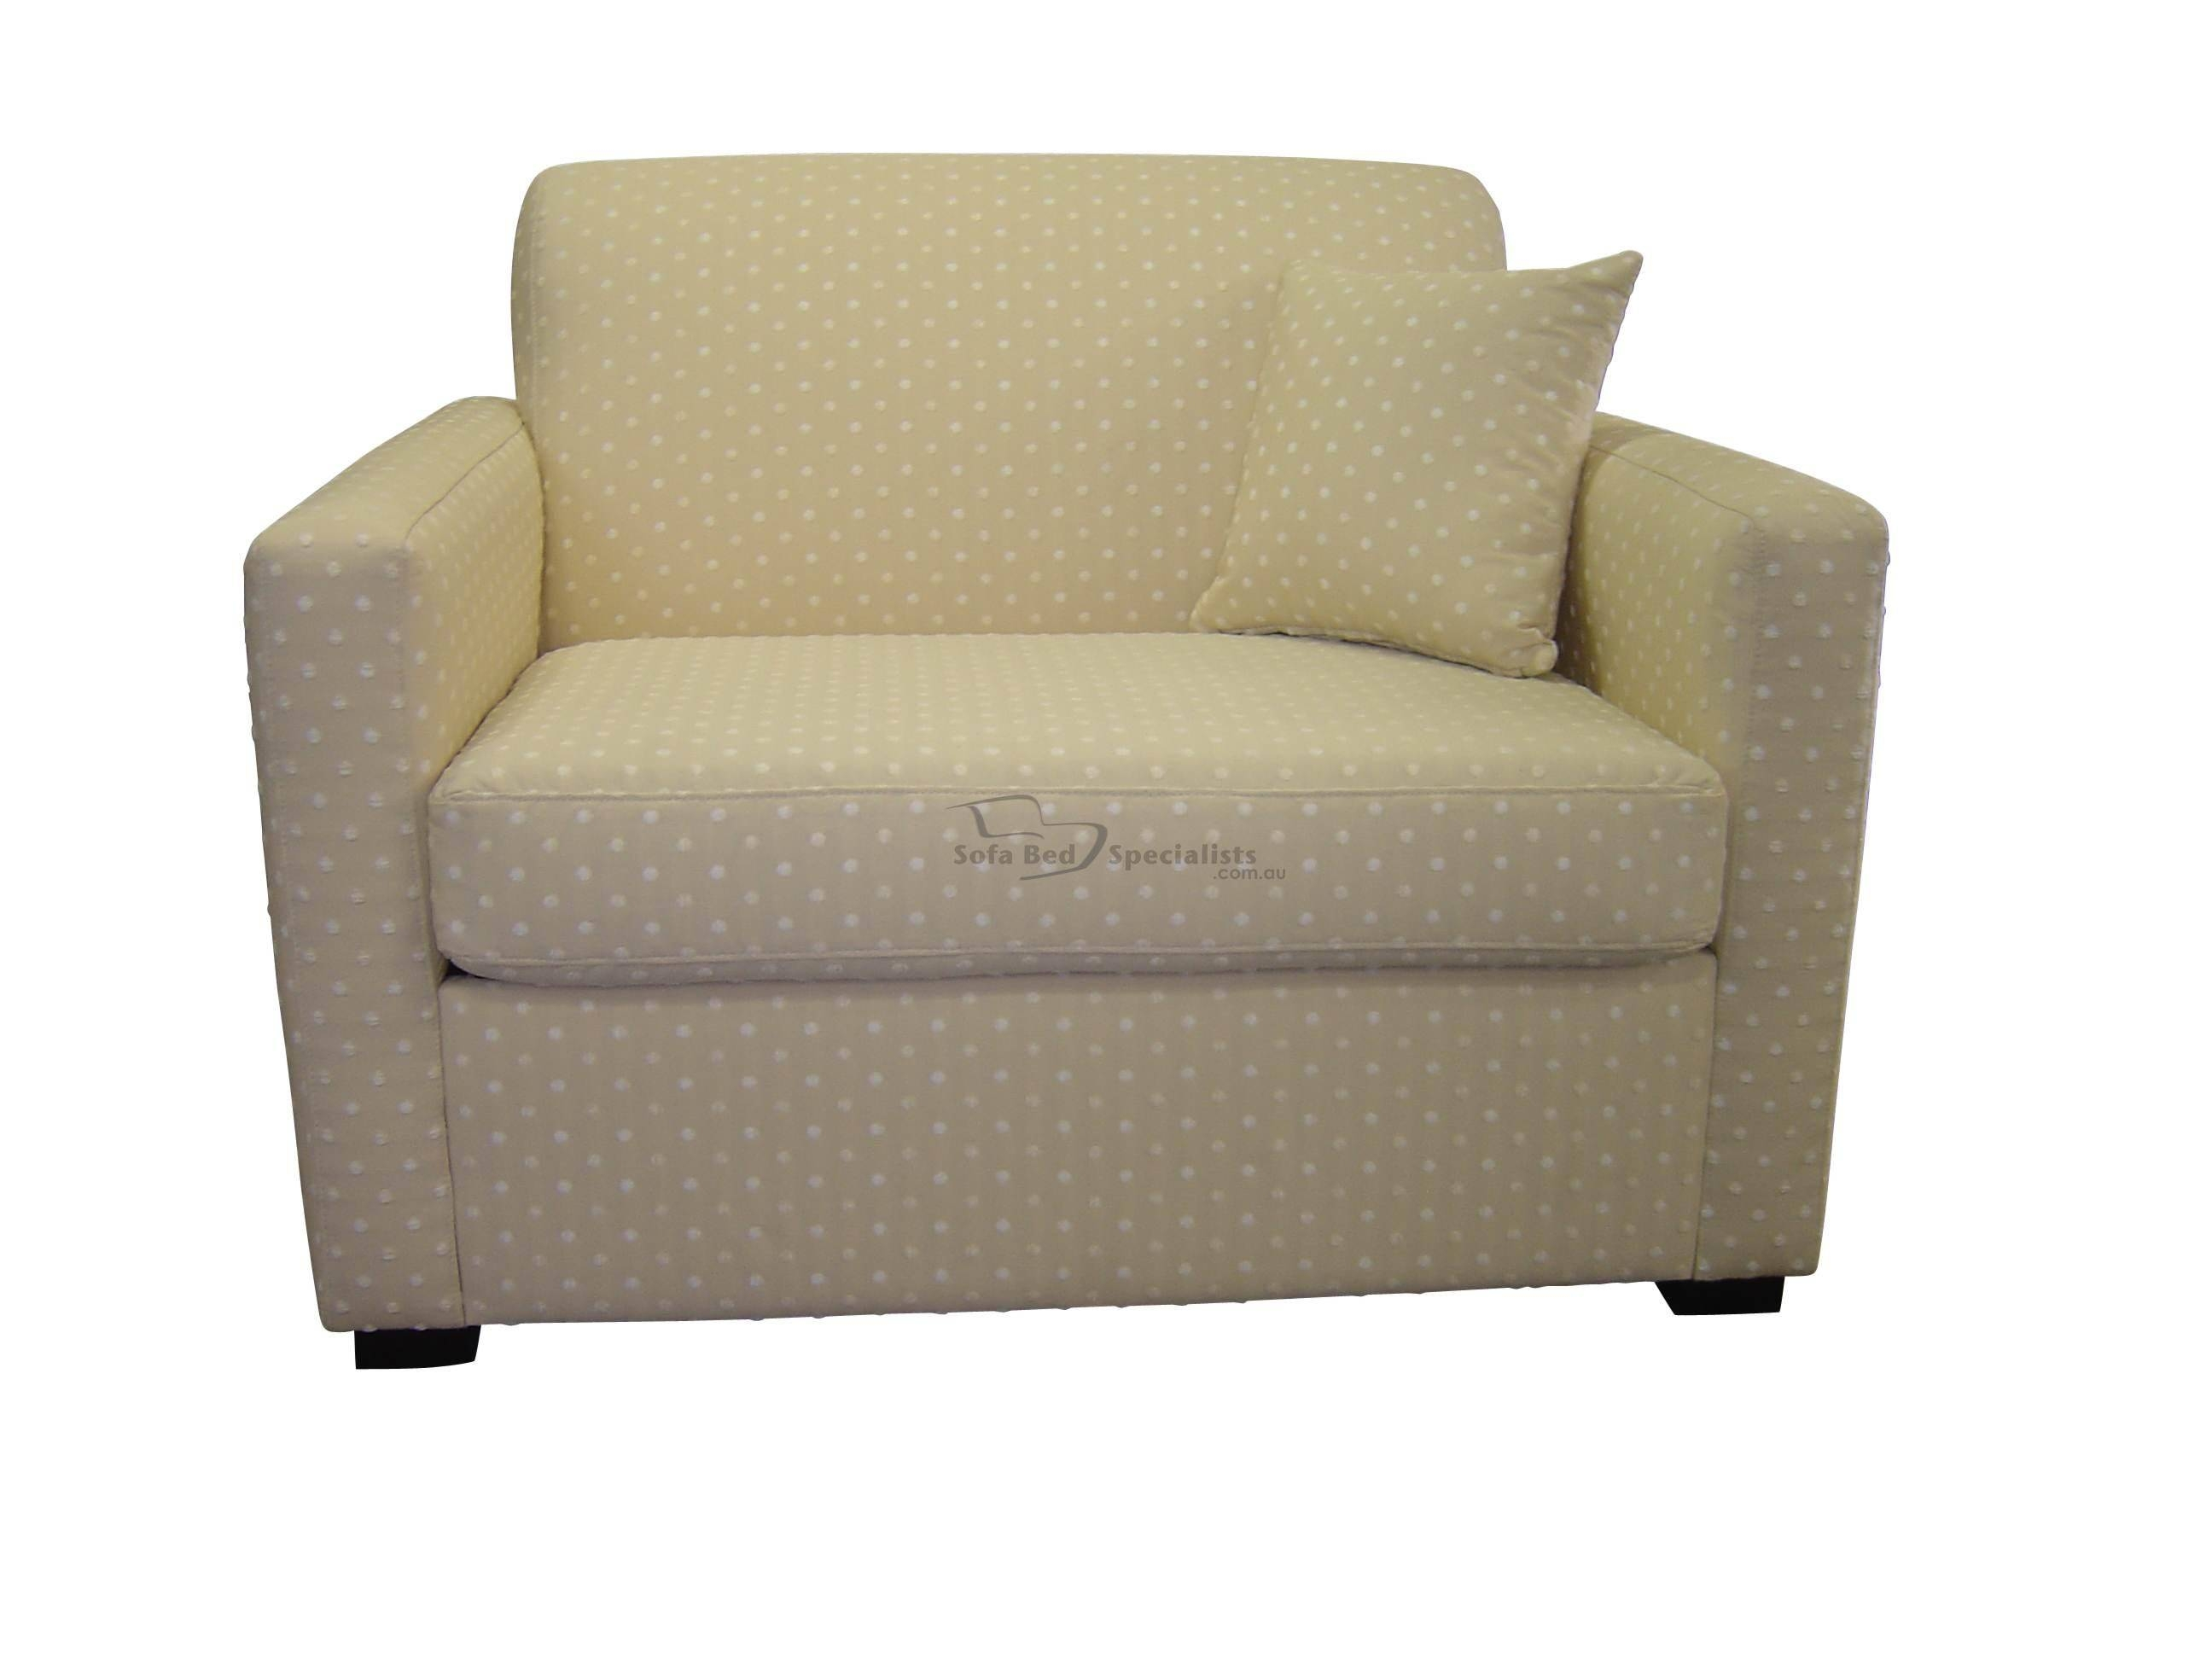 Single Sofa Chair Bed | Tehranmix Decoration pertaining to Sofa Chairs for Bedroom (Image 12 of 15)